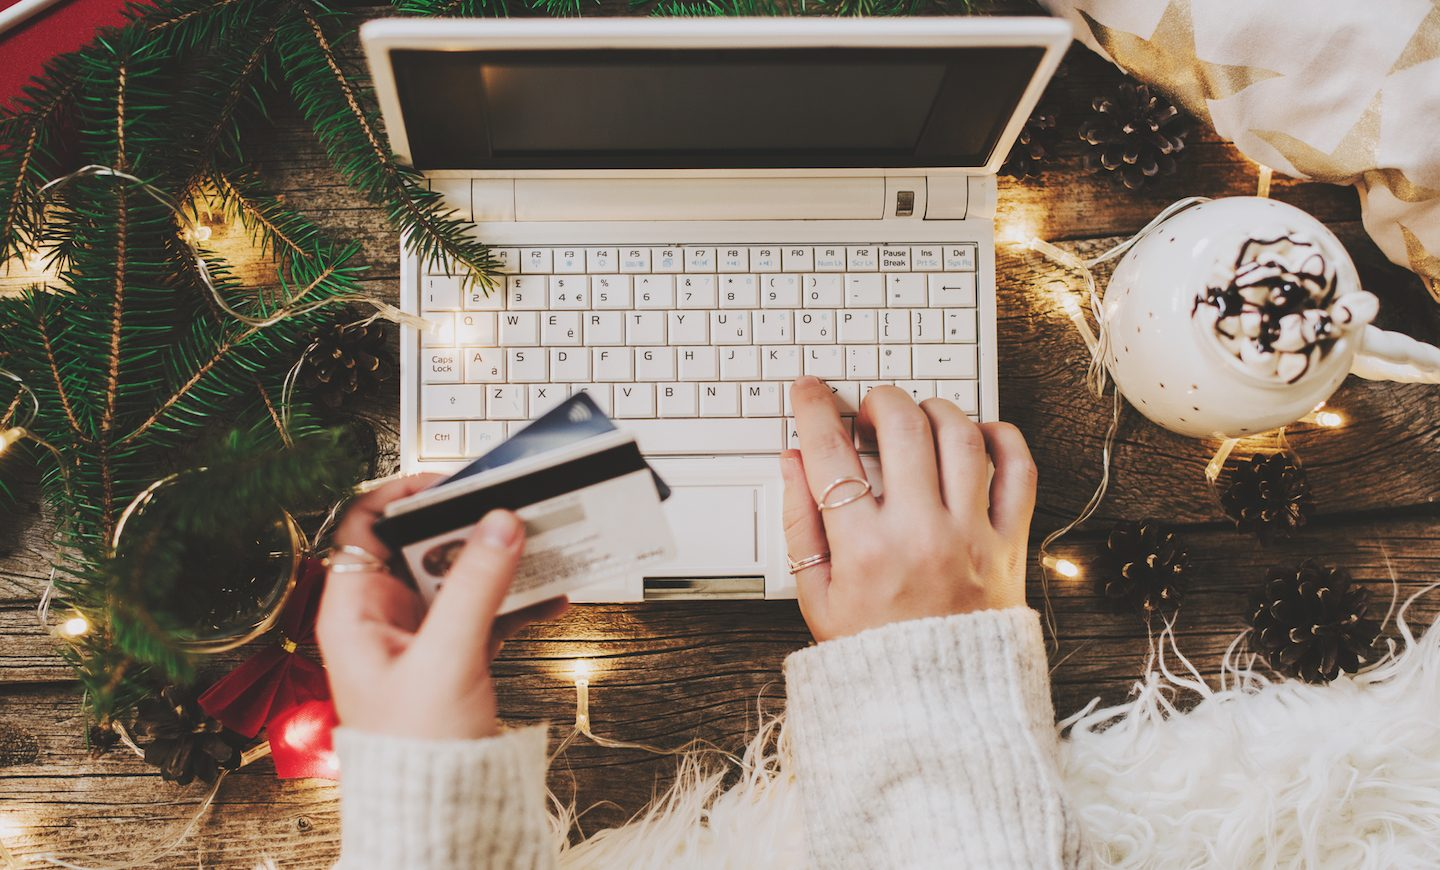 woman-using-credit-card-safely-online-for-christmas-shopping